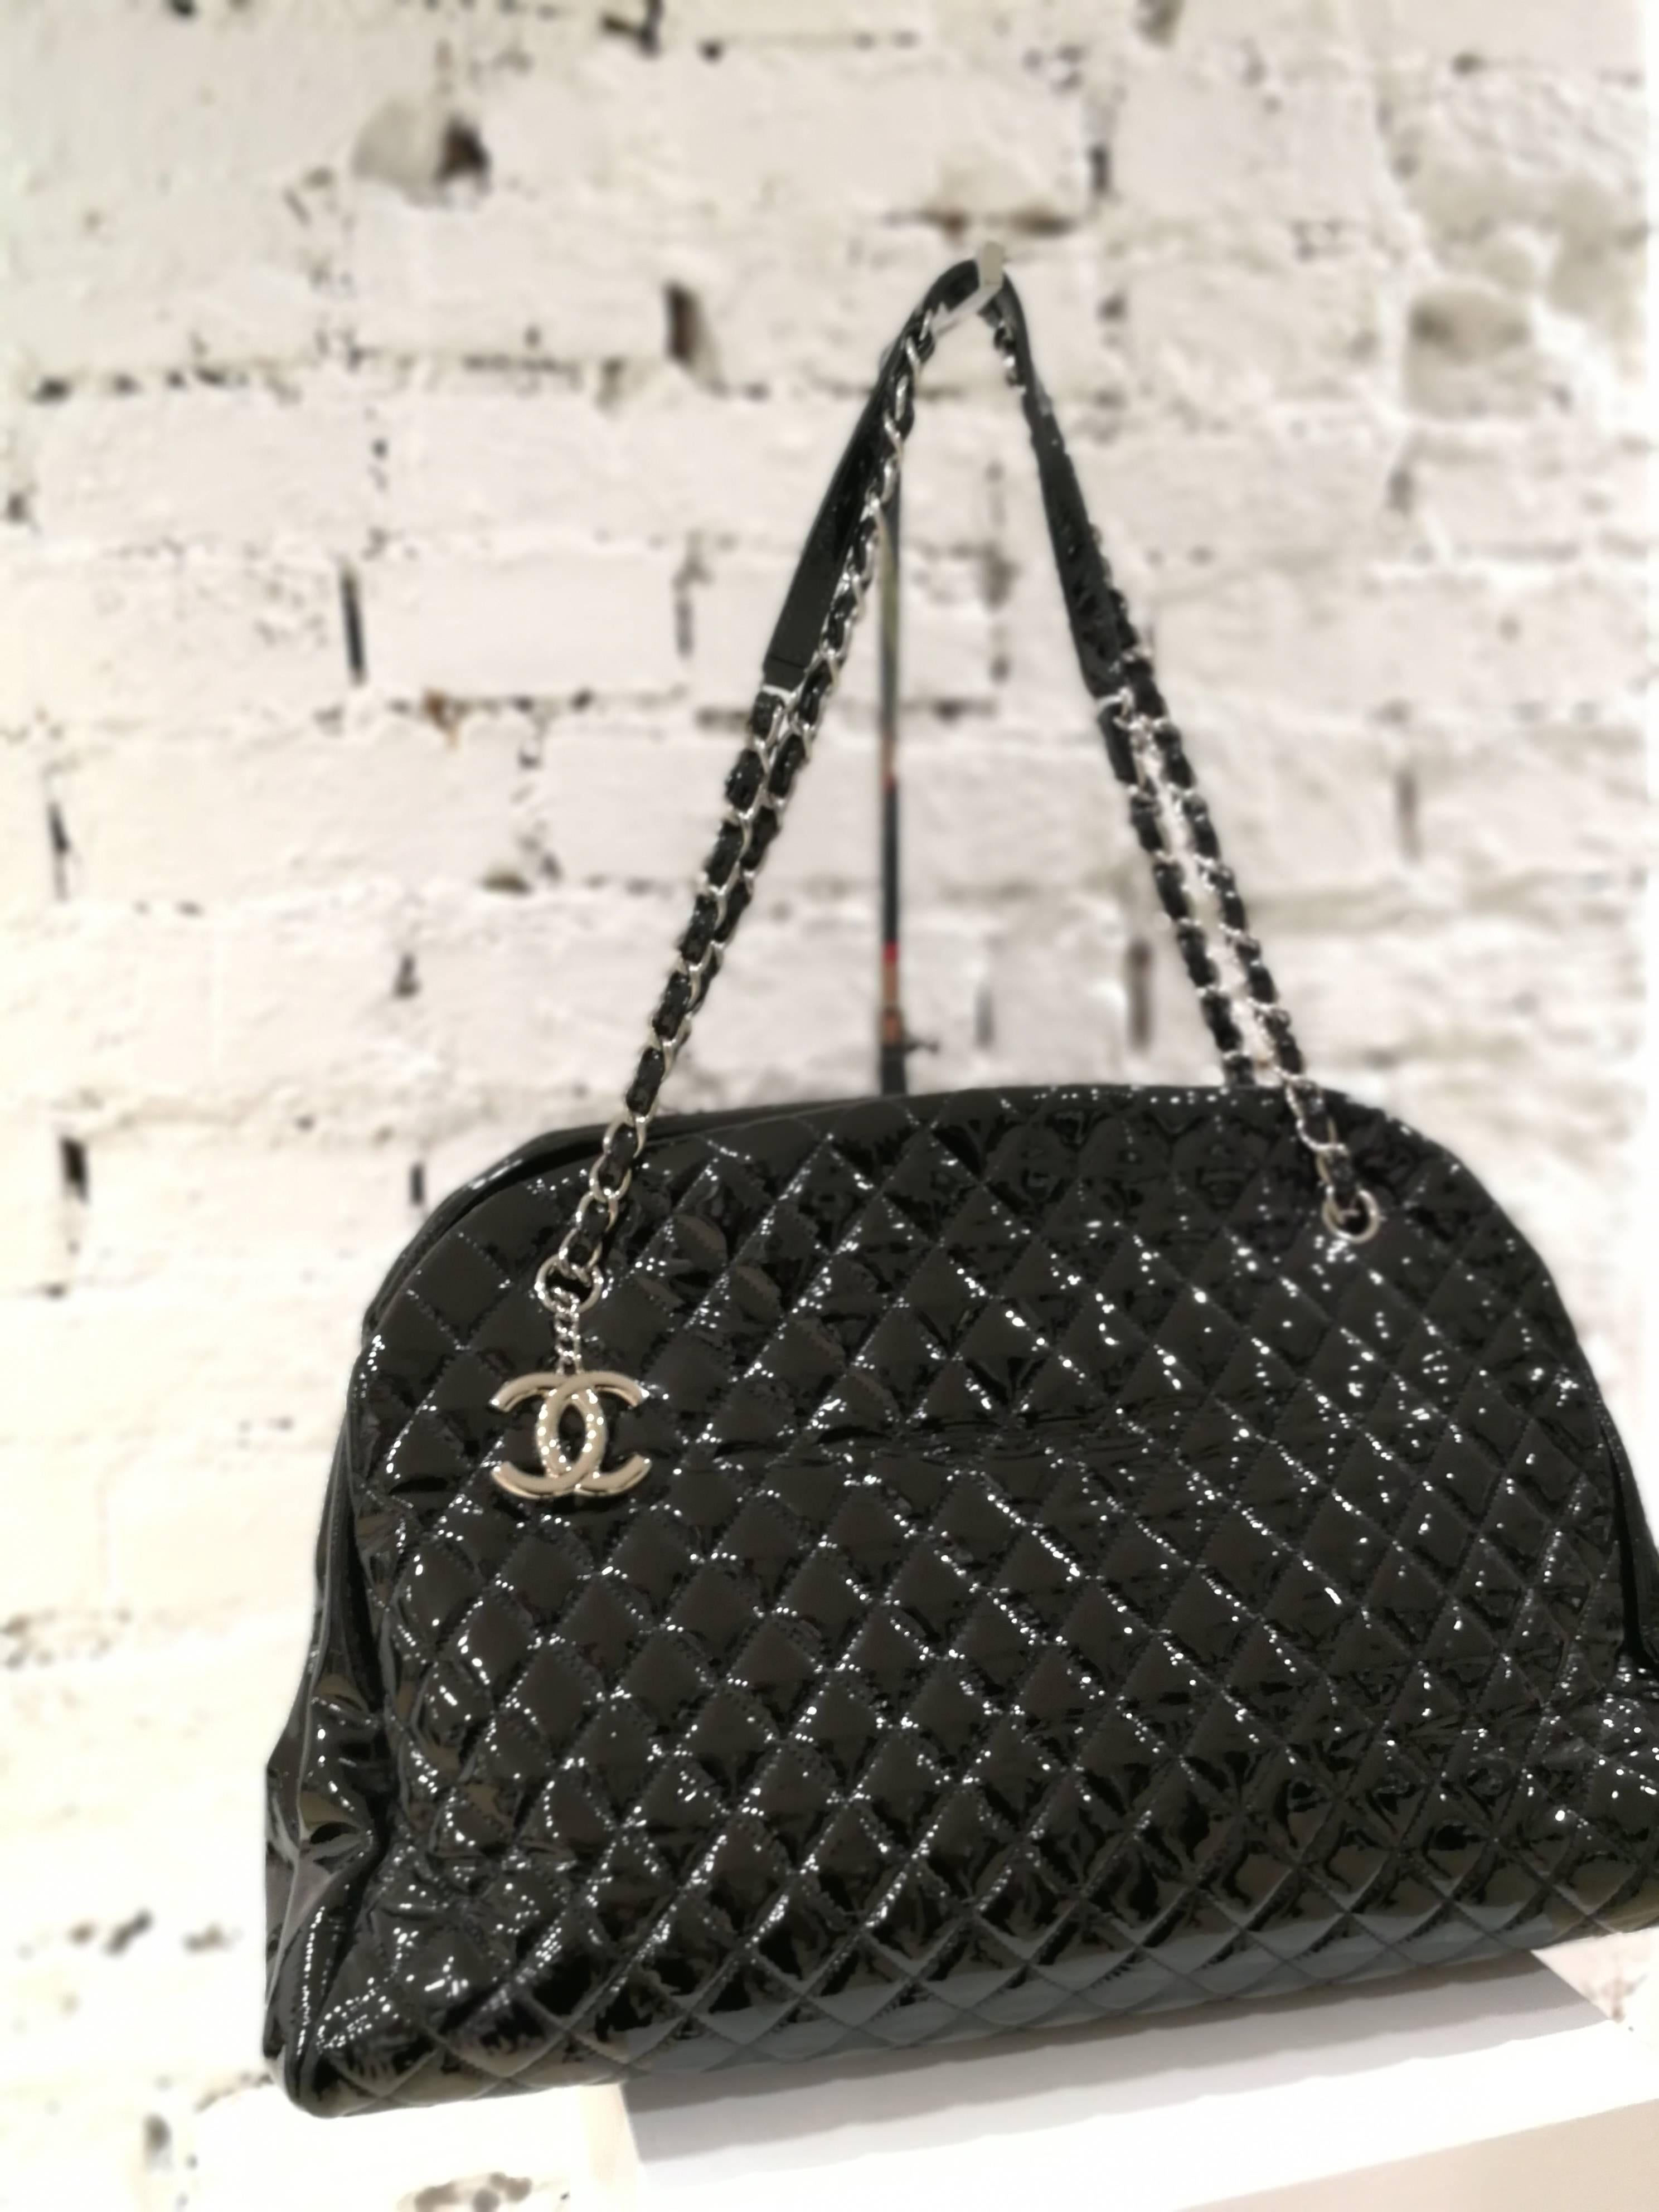 Chanel Just Mademoiselle Bowler Black patent Leather Bag at 1stdibs 20ecc3d5d2